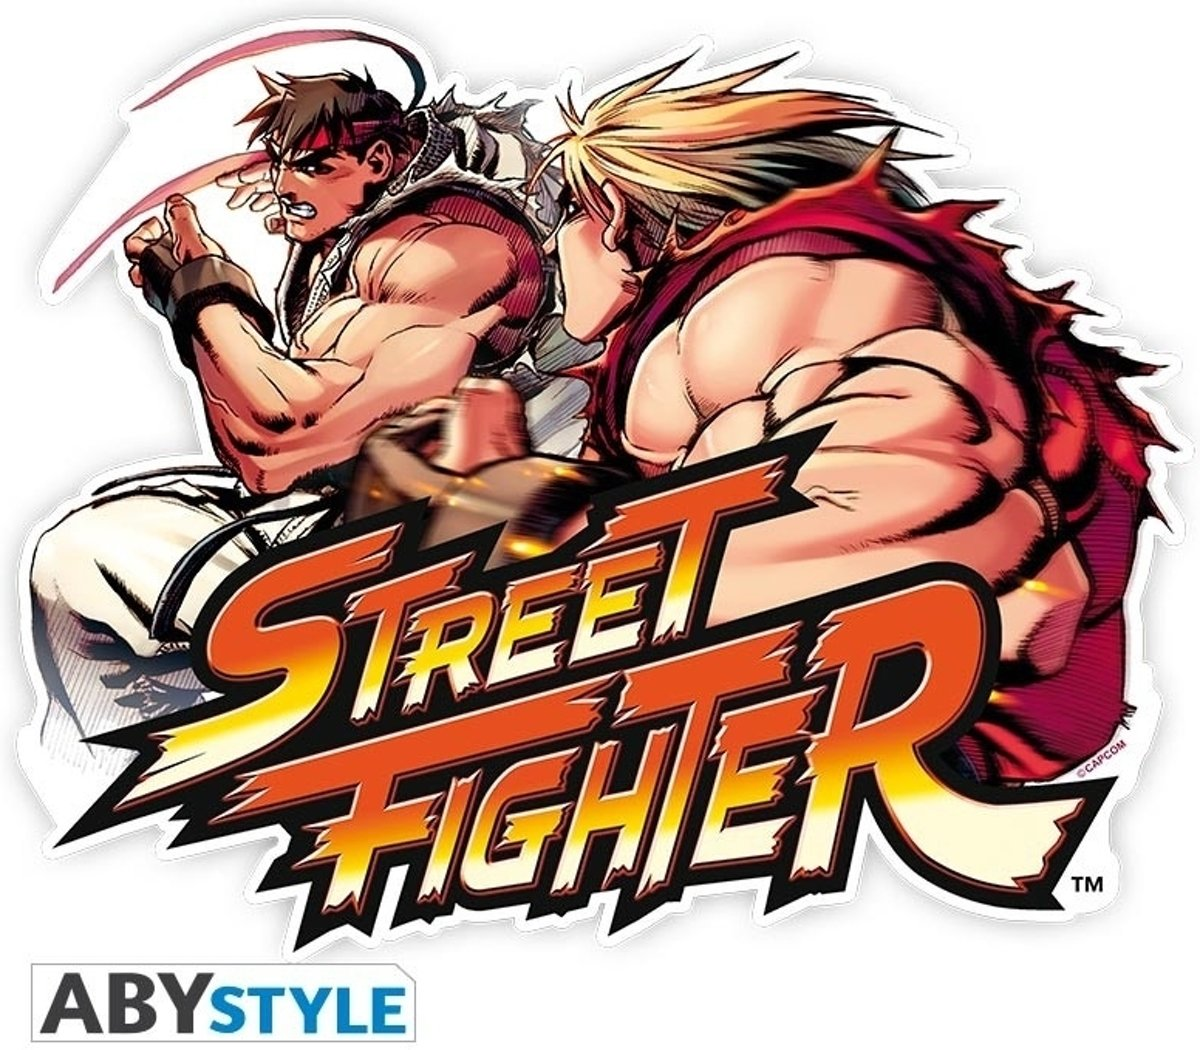 STREET FIGHTER - Mousepad - Ken vs Ryu - in shape